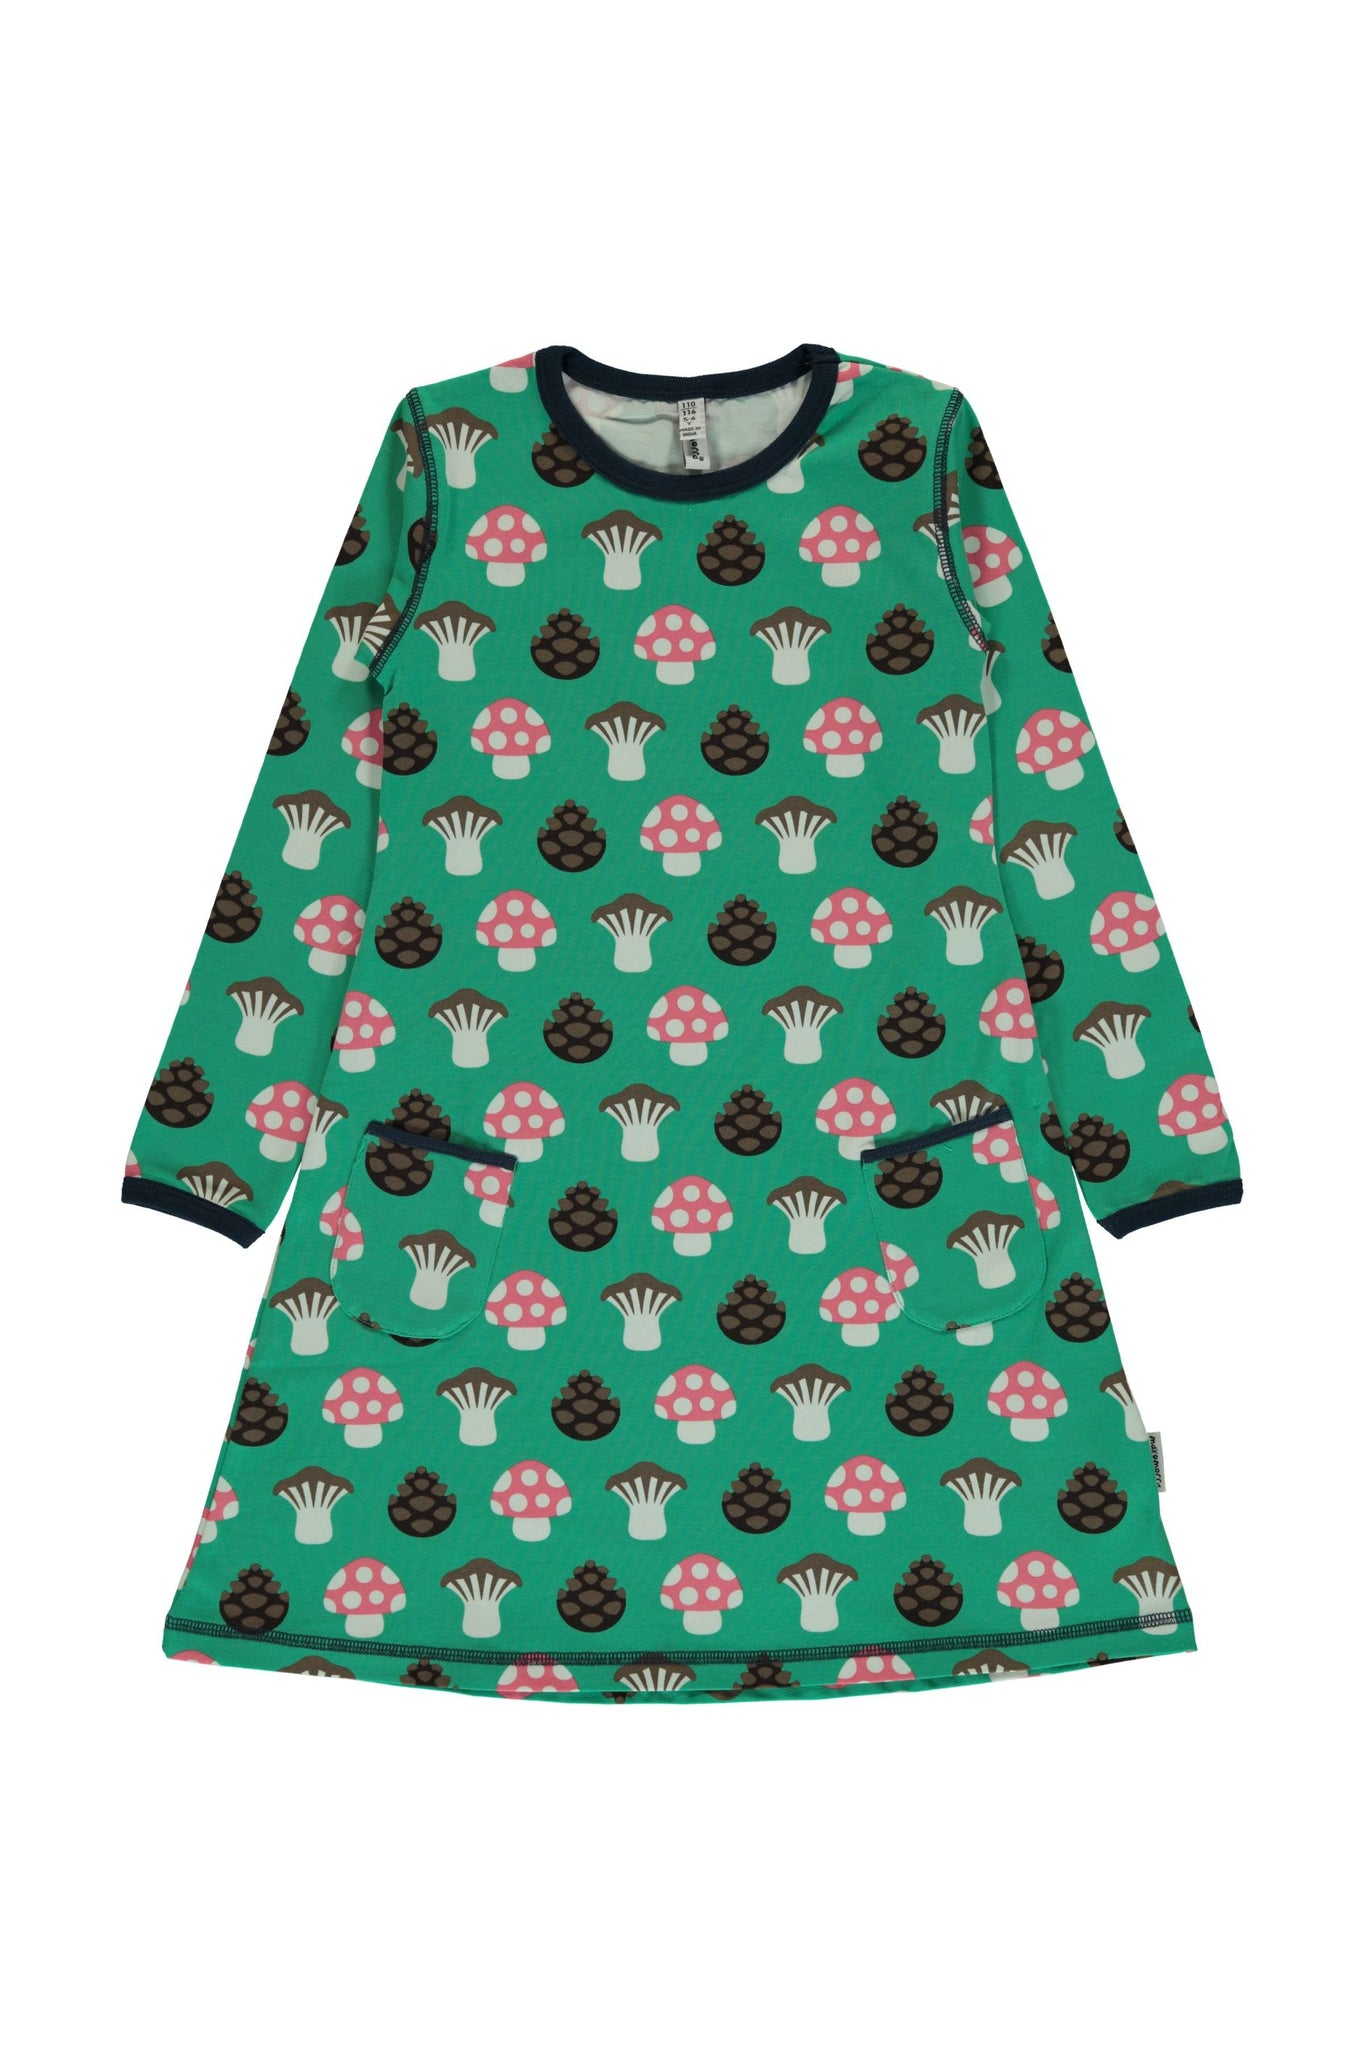 Mushroom - A-Line - Dress - Long Sleeves - Maxomorra Fashion - Snugglefox